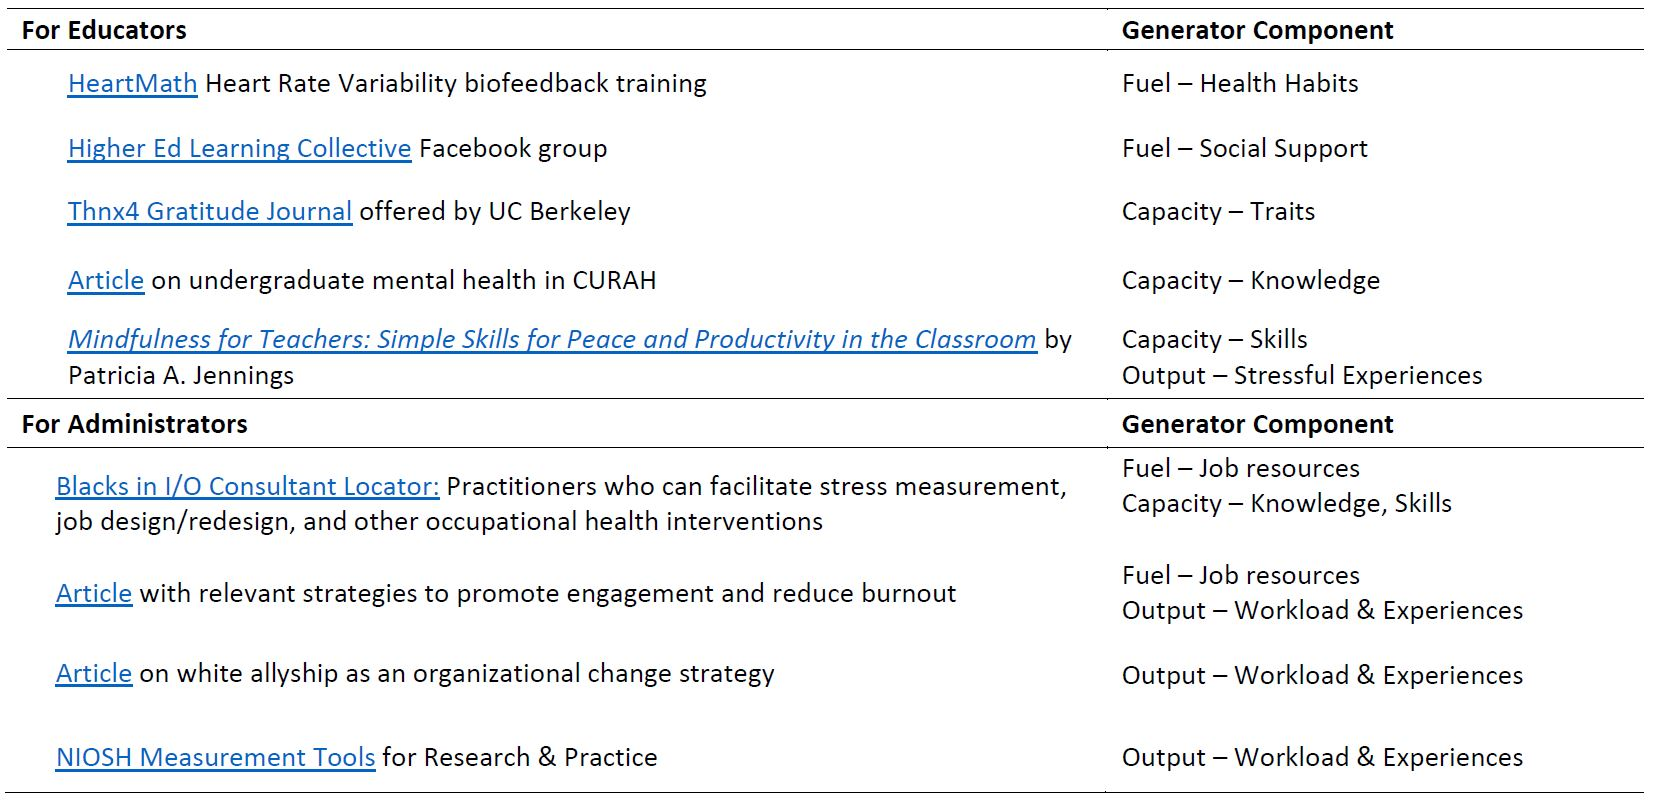 Table 2: Resources for Generating a Culture of Care (Click to Expand)